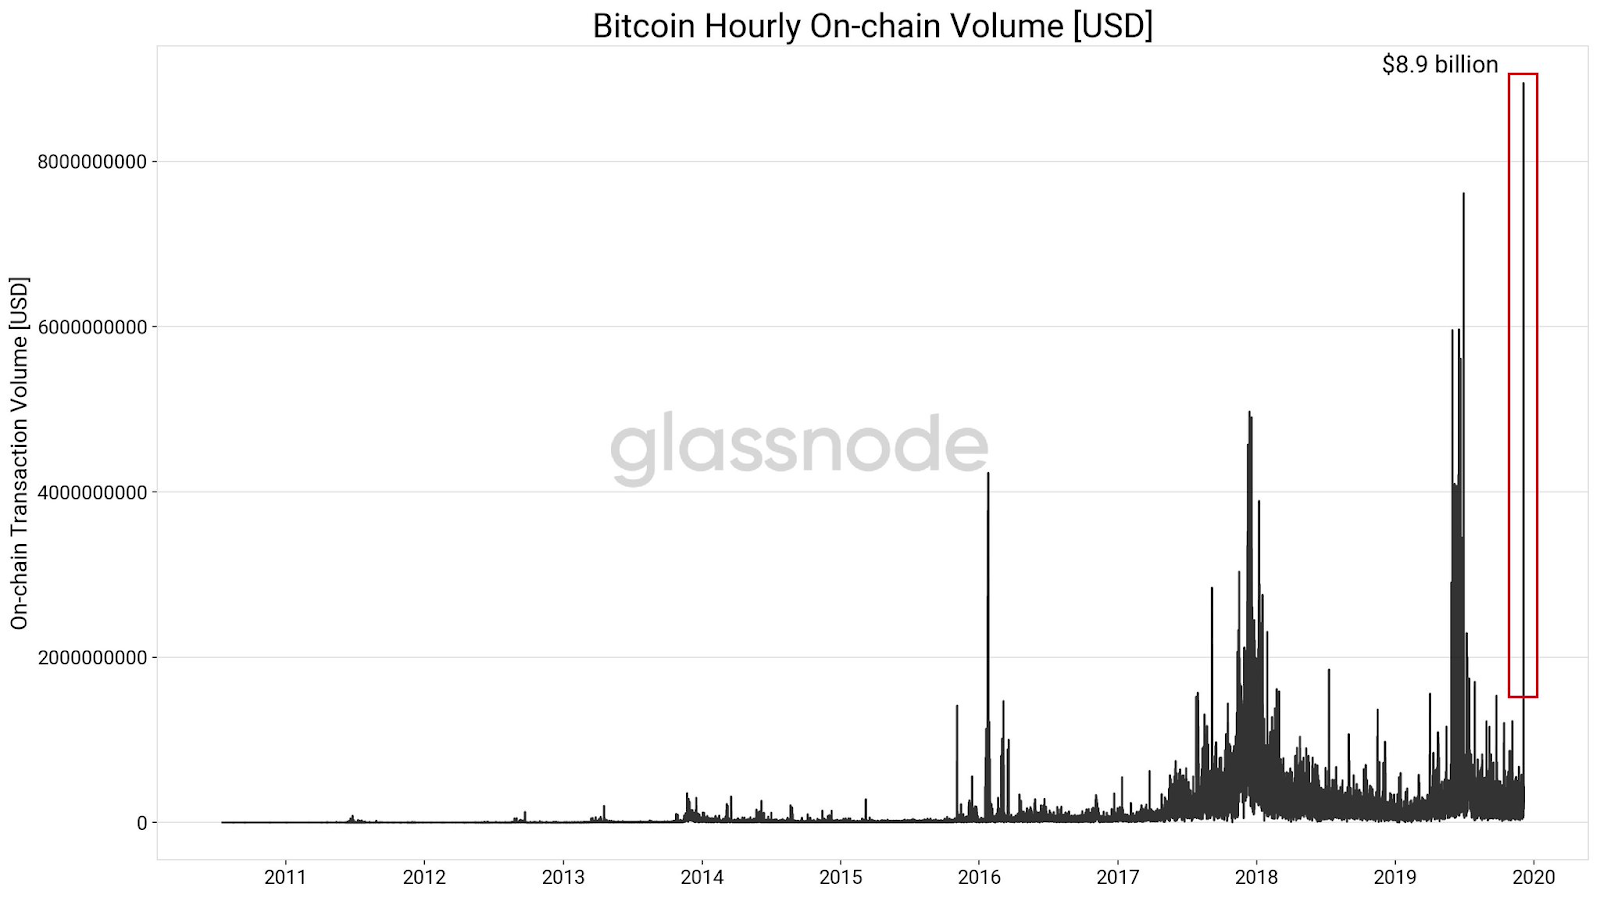 Bitcoin hourly on-chain transaction volume in U.S. dollars. Source: tweet